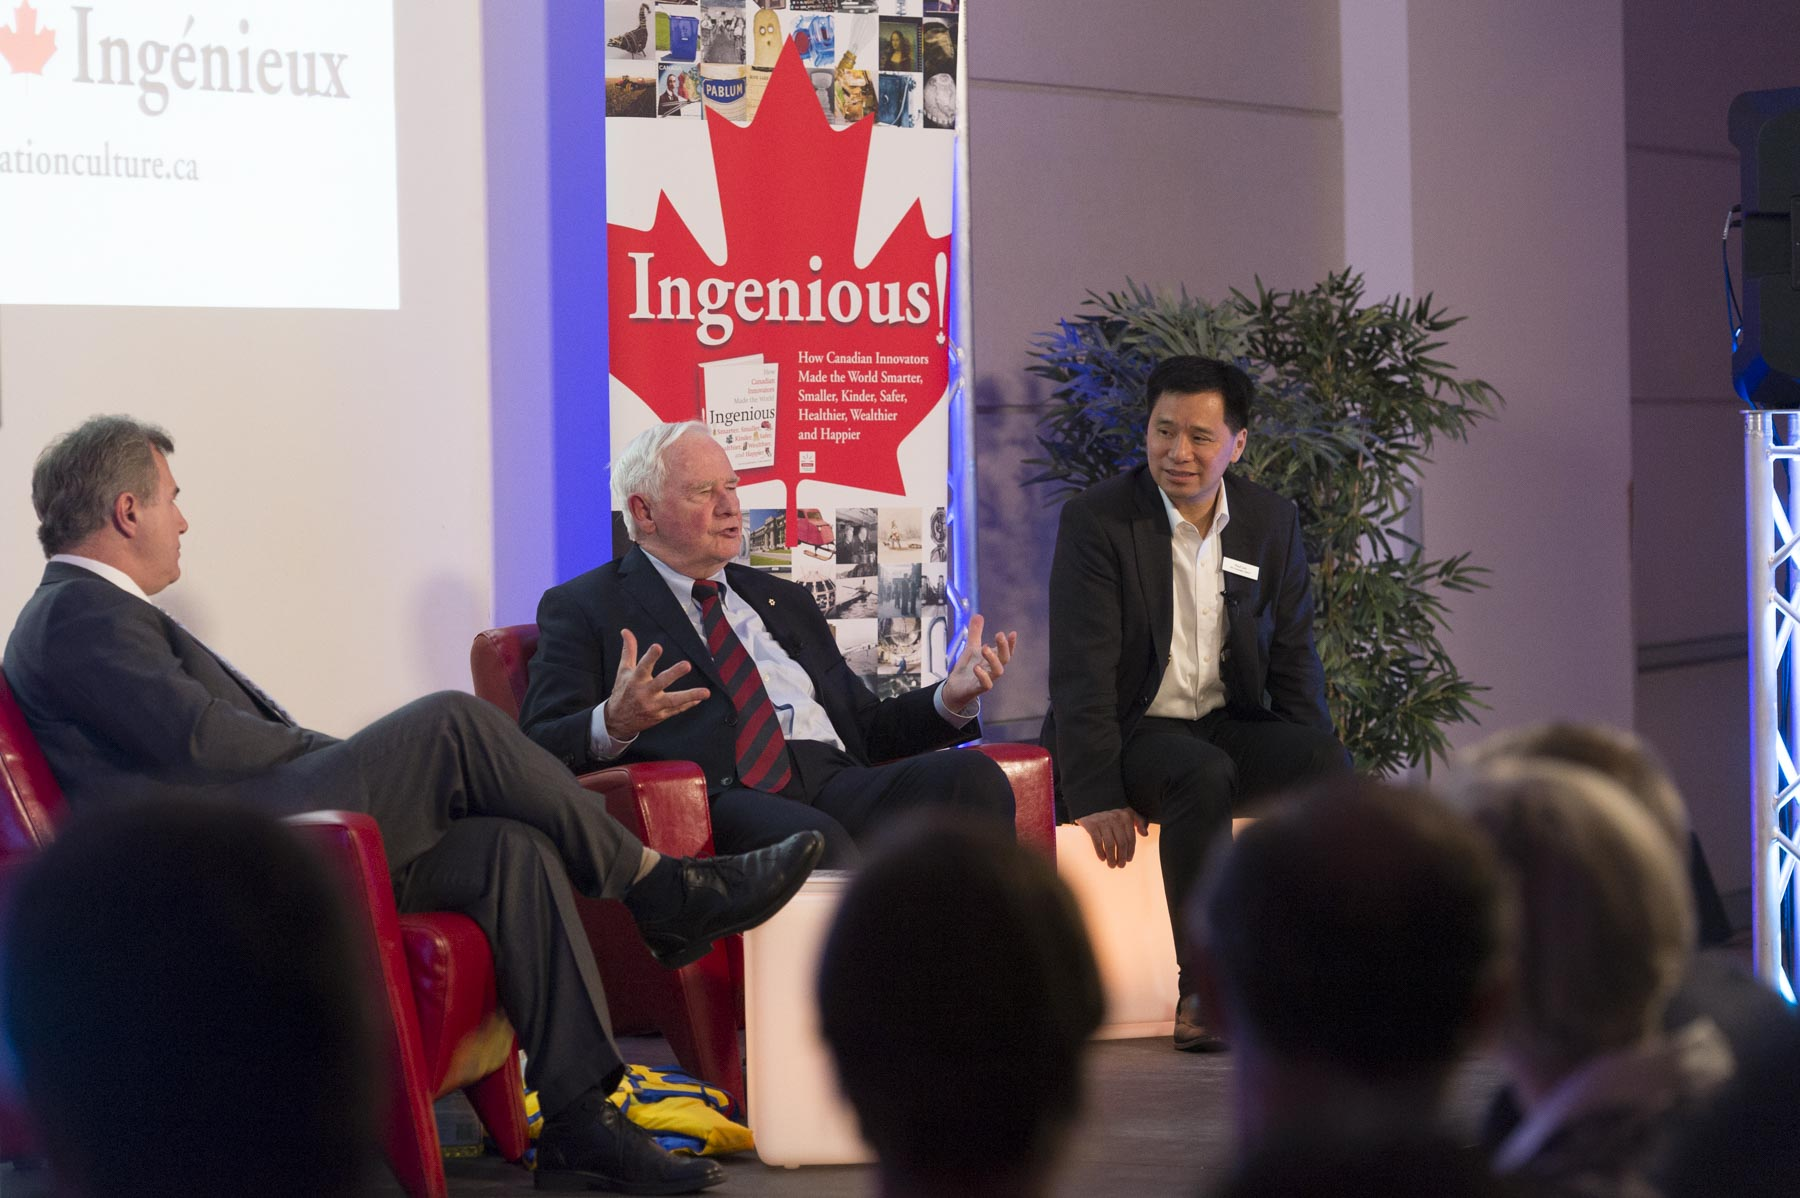 In the evening, during an on-stage conversation, the Governor General and Tom Jenkins, Chair and former CEO of OpenText and Chair of the National Research Council, spoke about their book, Ingenious, to more than 200 guests at the Vancouver Public Library.